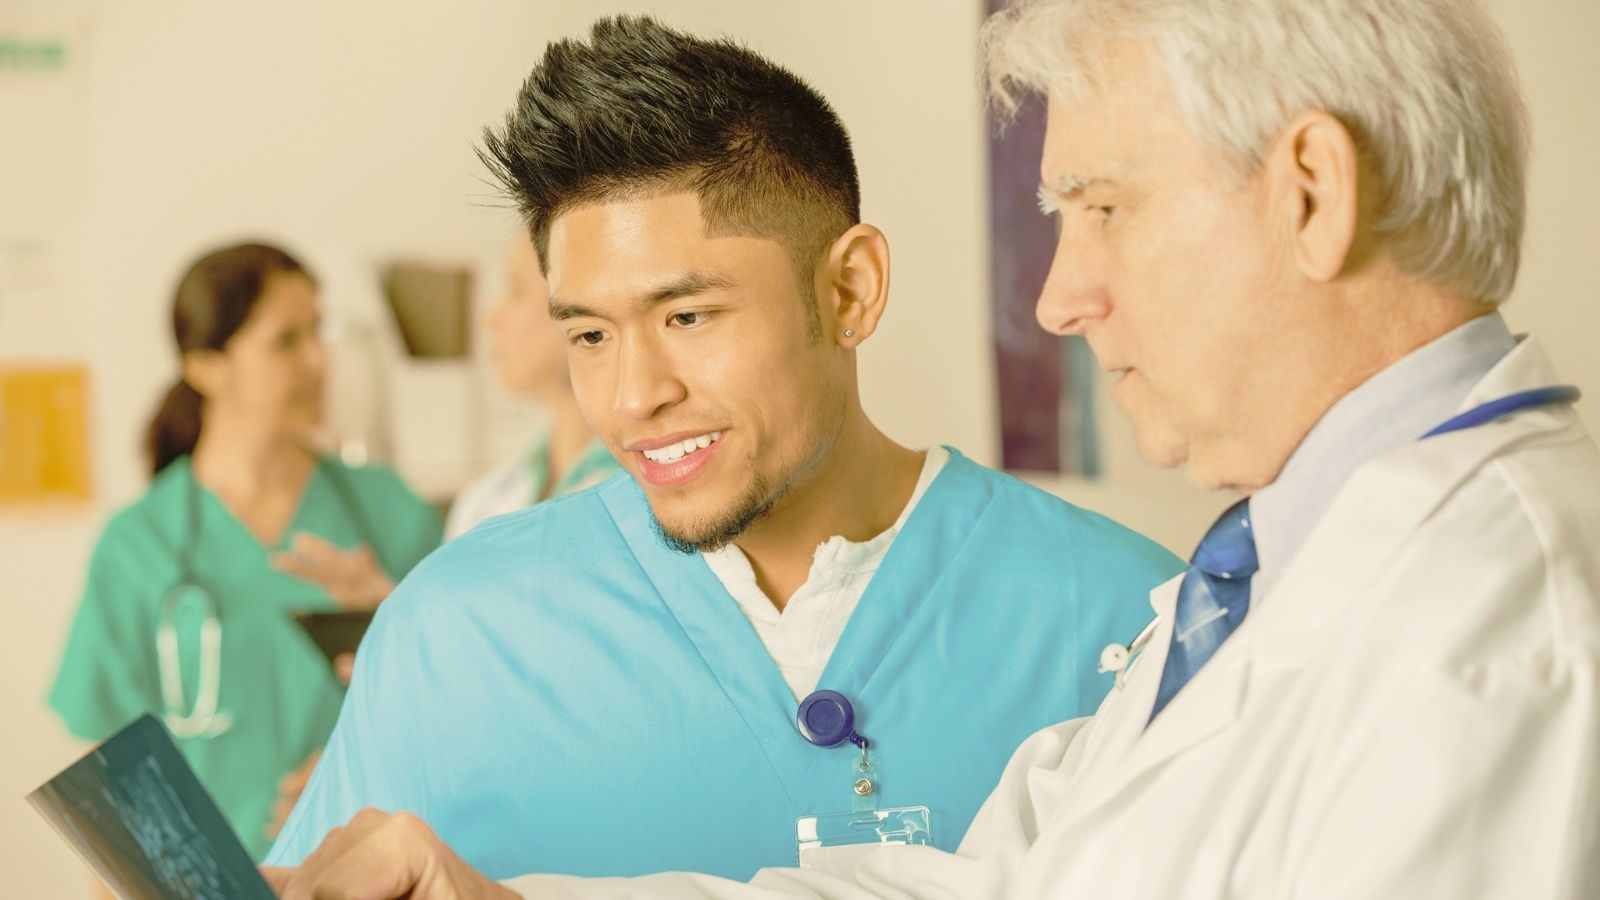 NMI NCLEX Application: All you need to know about NCLEX NMI